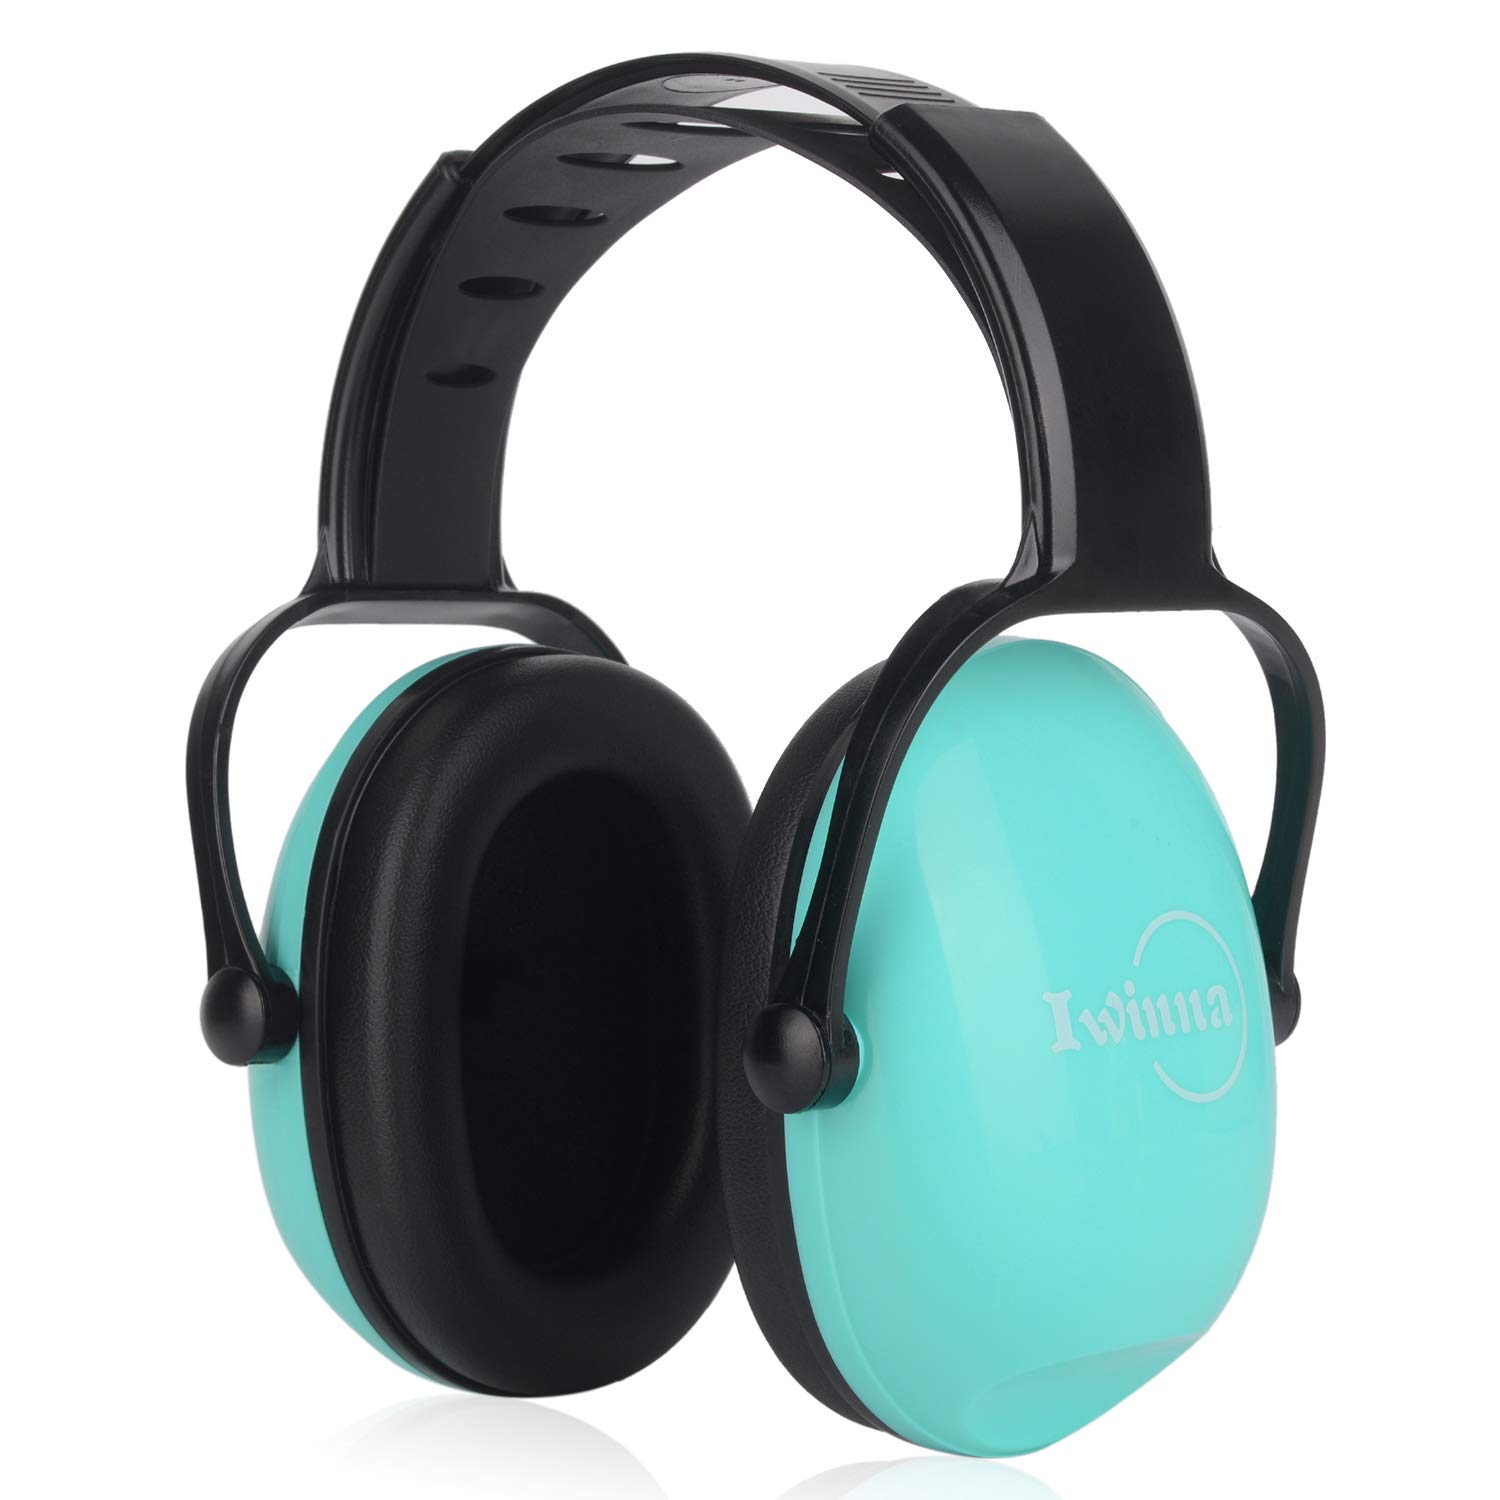 Kids Ear Protection Noise Cancelling Earmuffs for Autism Babies Children Toddlers Small Adults Safety Ear Muffs for Sleeping Studying Shooting Racing Fireworks Sports, Mint Green